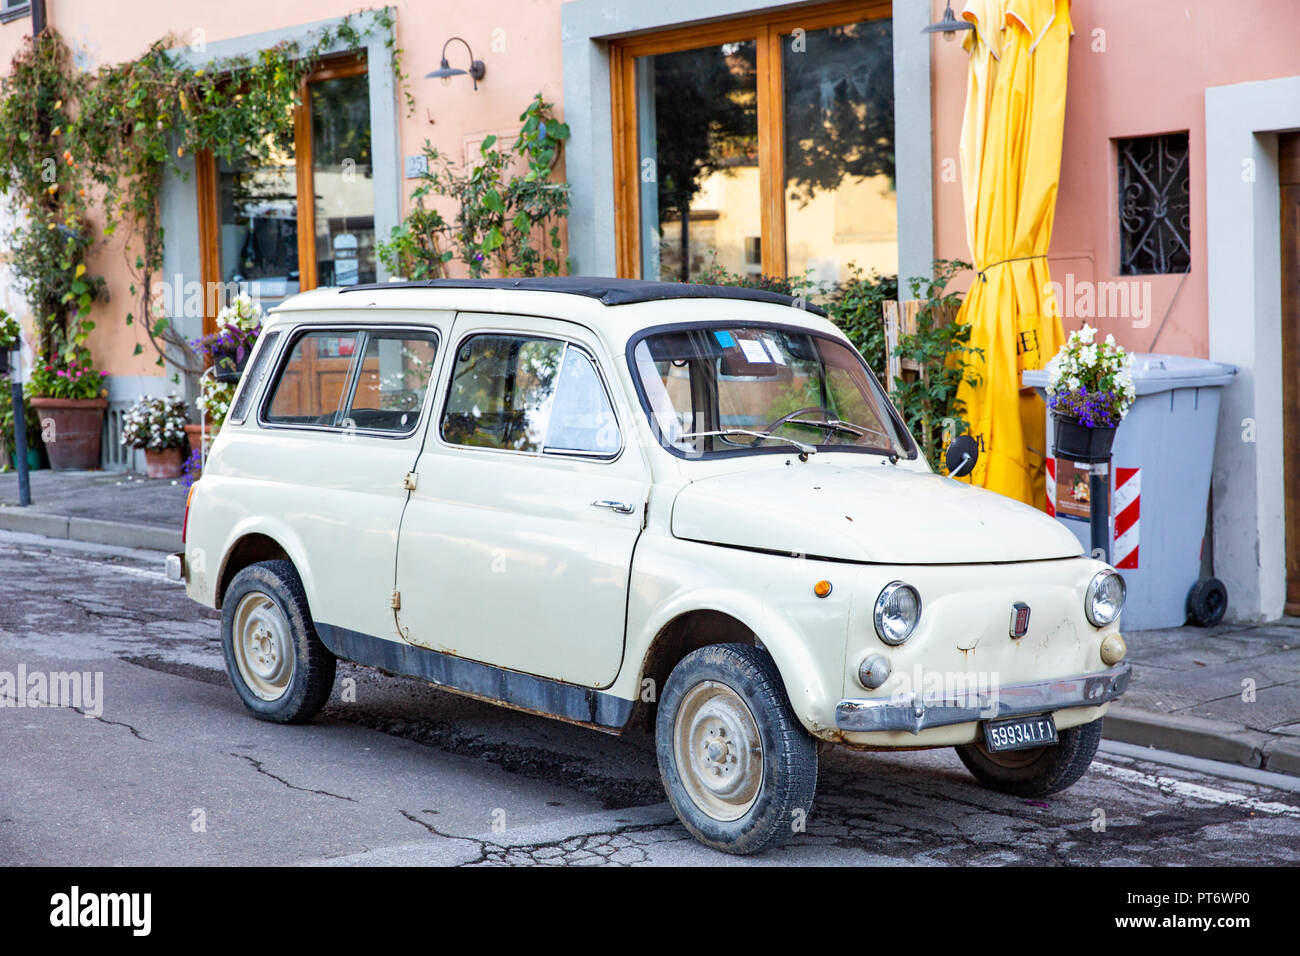 Classic Fiat Giardiniera estate model of the Fiat 500 in Panzano,Tuscany,Italy - Stock Image